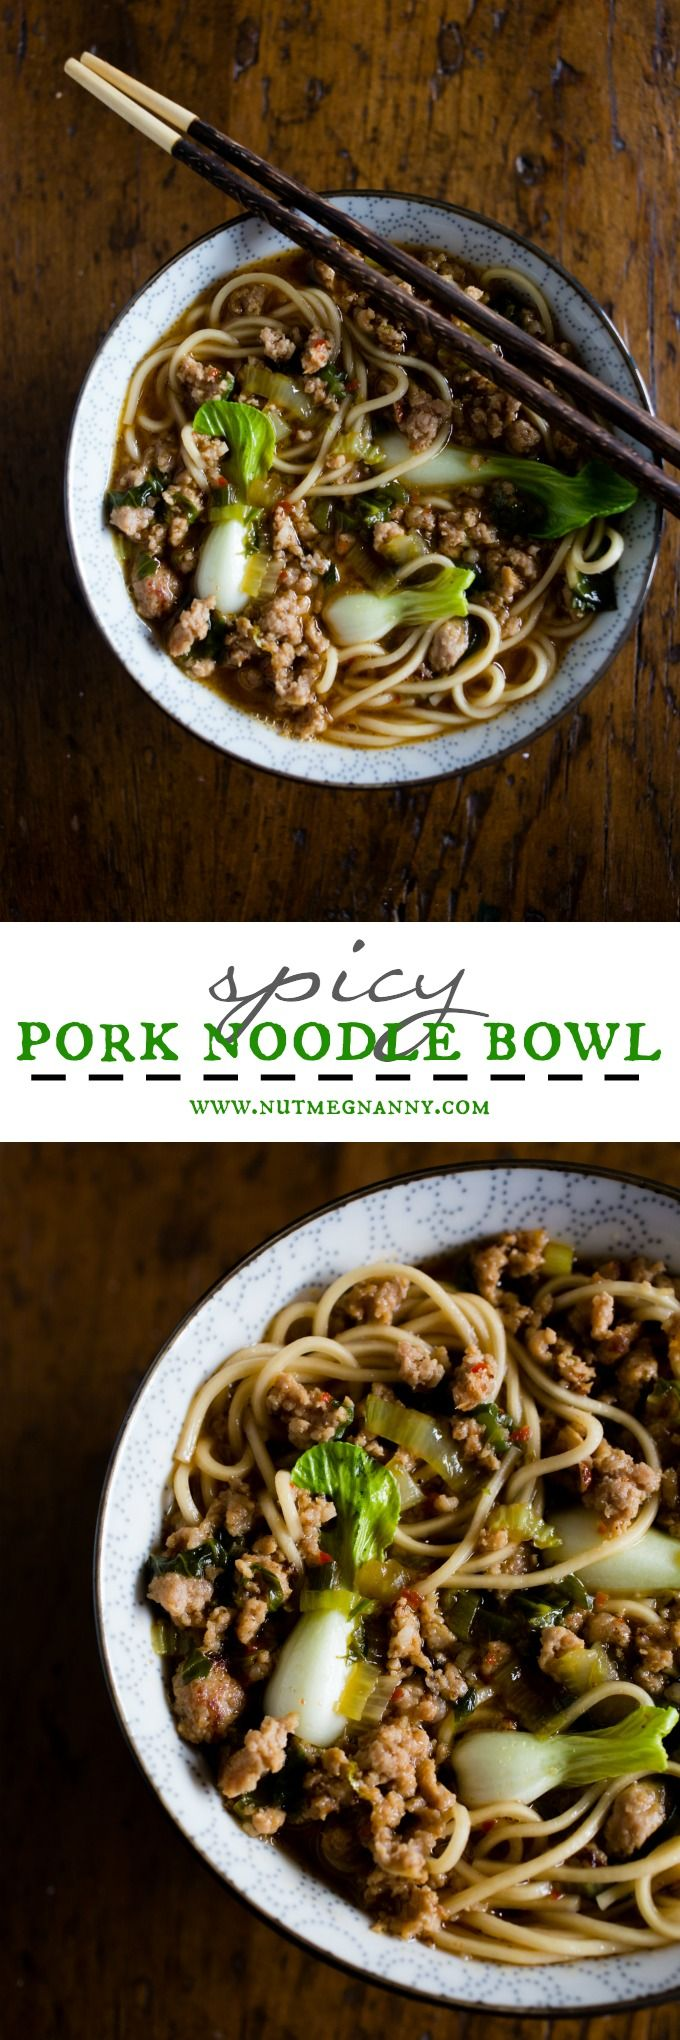 This spicy pork noodle bowl is packed full of flavor and ready in just 30 minutes. It's a quick and easy meal that is sure to please you whole family! Spicy ground pork sautéed with Sichuan peppercorns and swimming in a delicious broth with baby bok choy and perfectly cooked noodles.